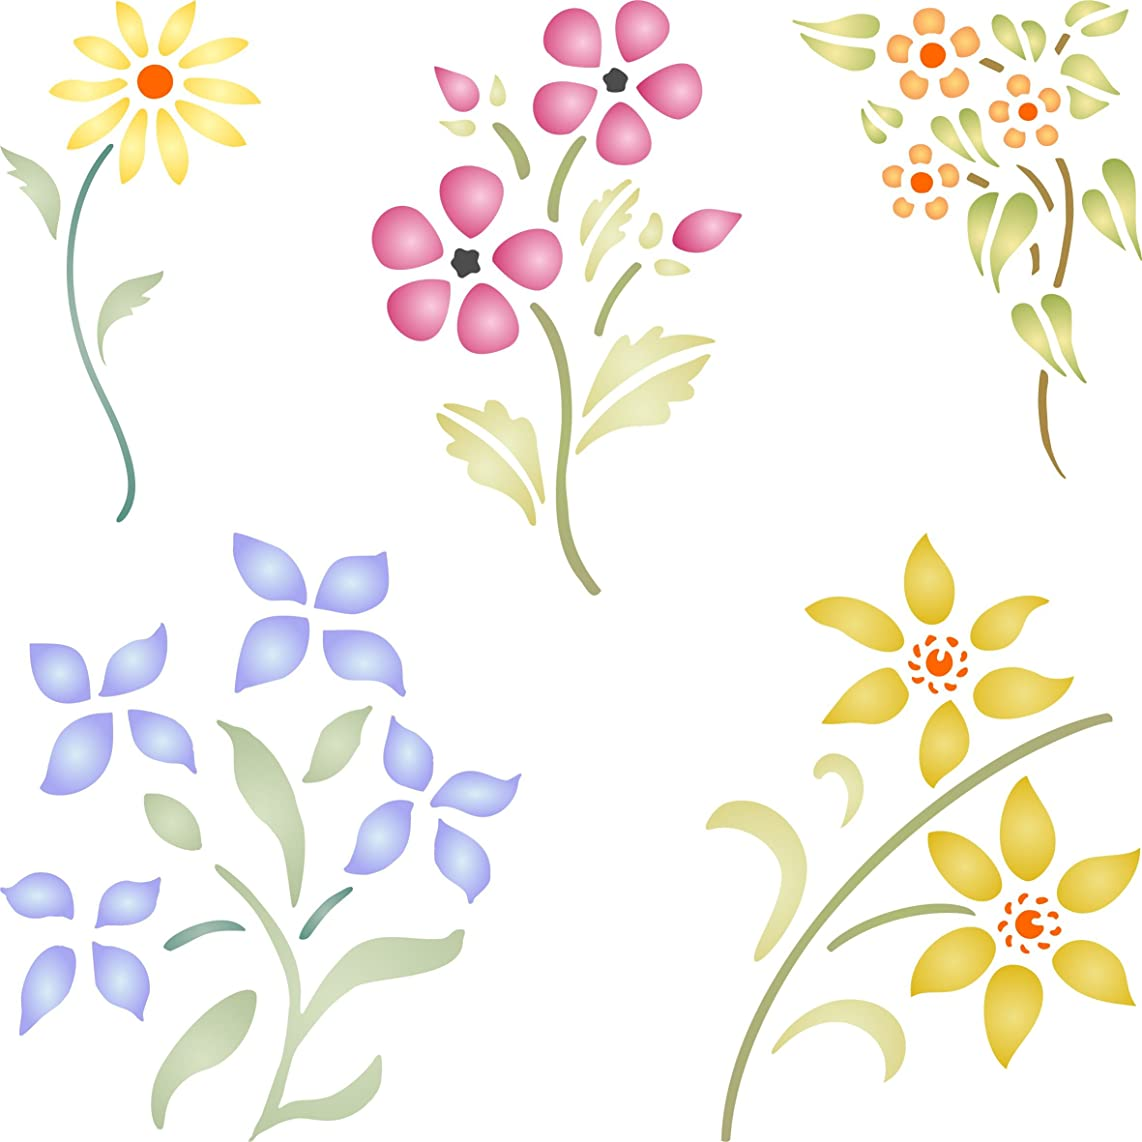 """Floral Set Stencil - (size 6.5""""w x 6.5""""h) Reusable Wall Stencils for Painting - Best Quality Flower Template Ideas - Use on Walls, Floors, Fabrics, Glass, Wood, and More…"""